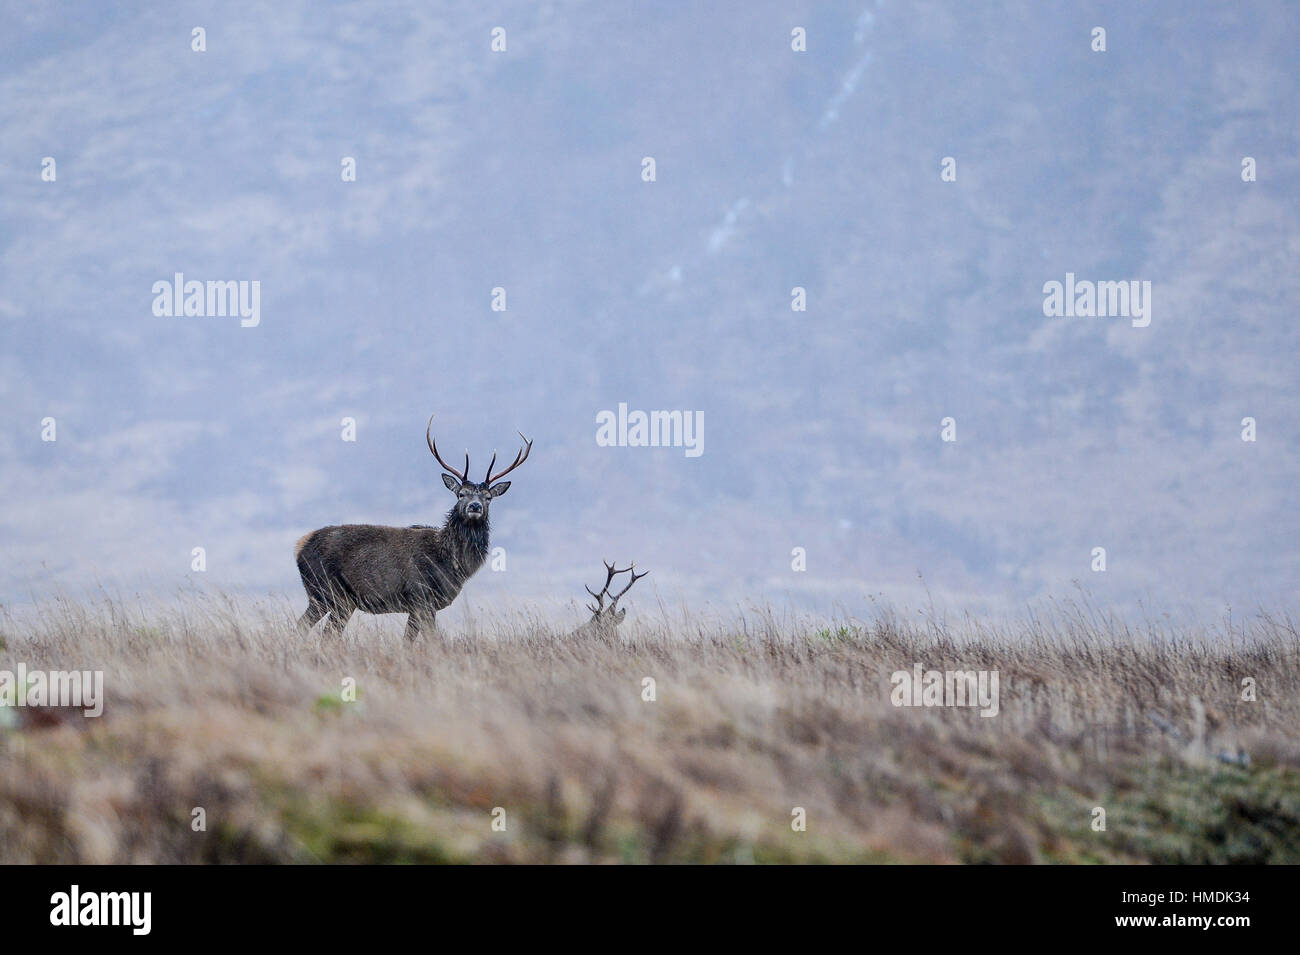 The monarch of the glen, a red deer stag stands guard on a cold winters day in Glen Etive, Scotland. - Stock Image